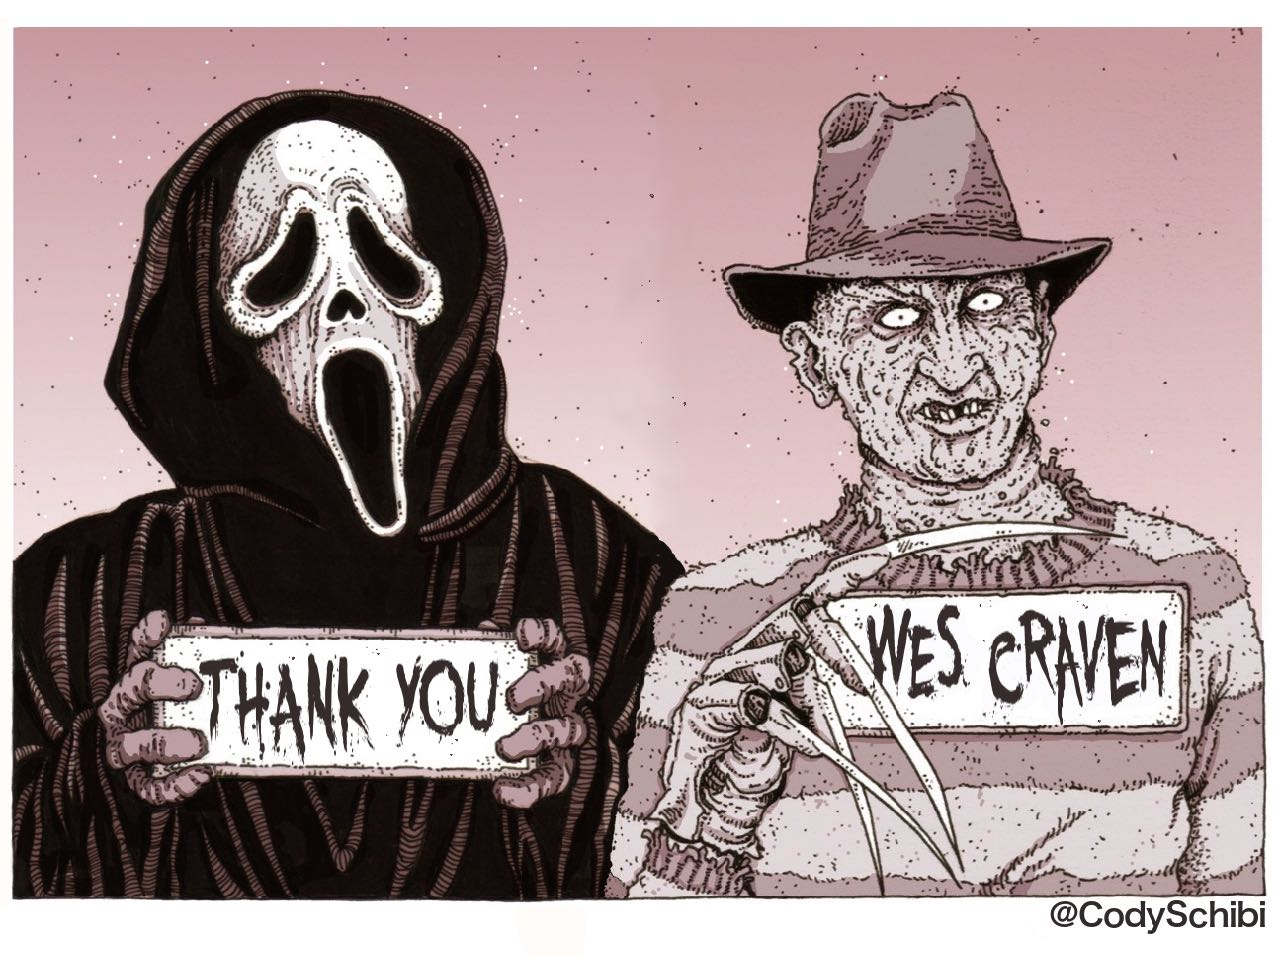 1280x956 Drawing A Blank The Art Of Cody Schibi Rip Wes Craven